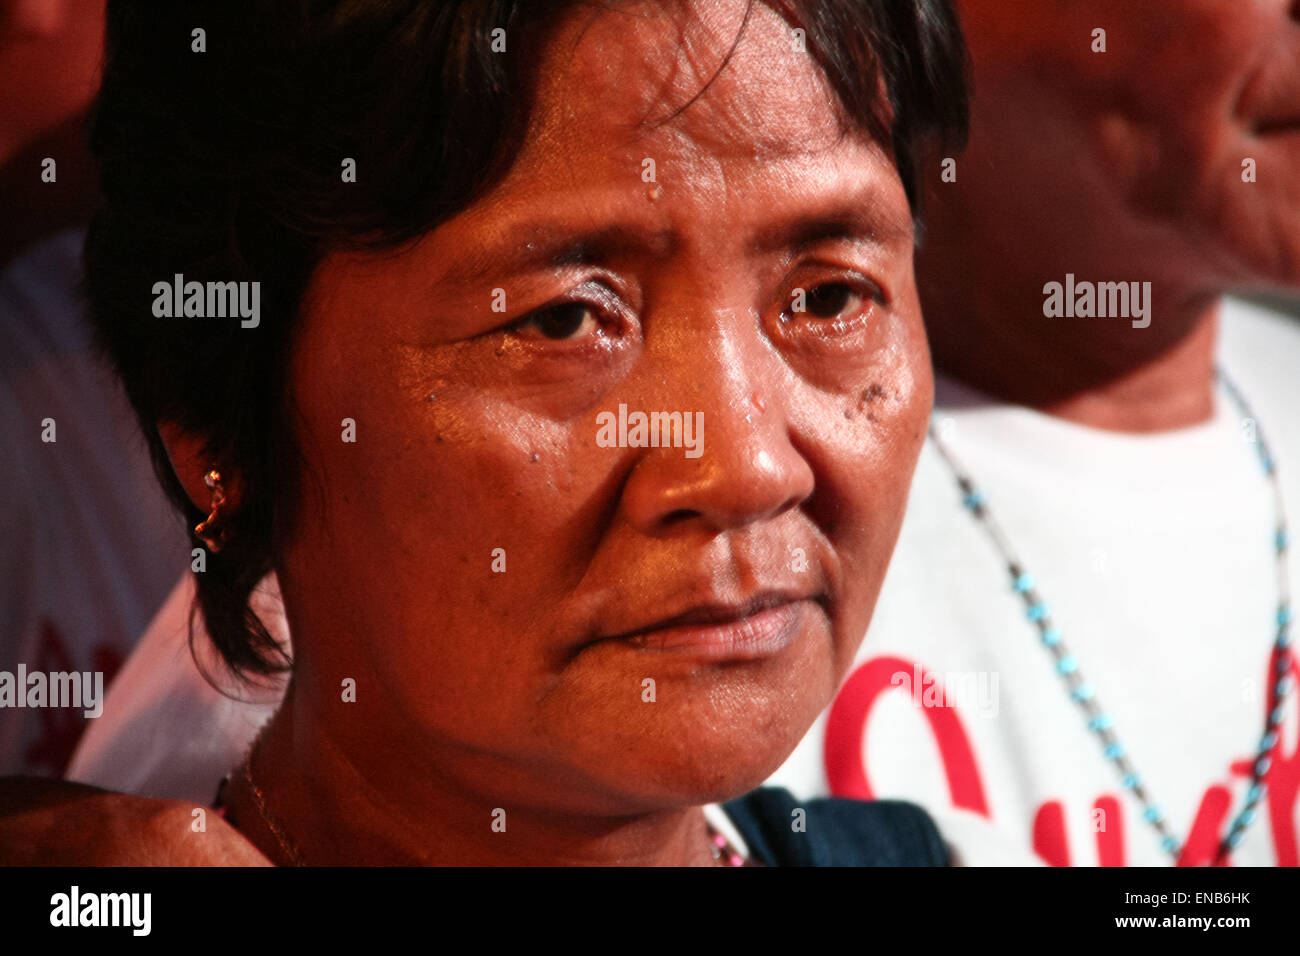 Manila, Philippines. 01st May, 2015. The teary eyed mother of Mary Jane Veloso faced the crowd of protesters in - Stock Image